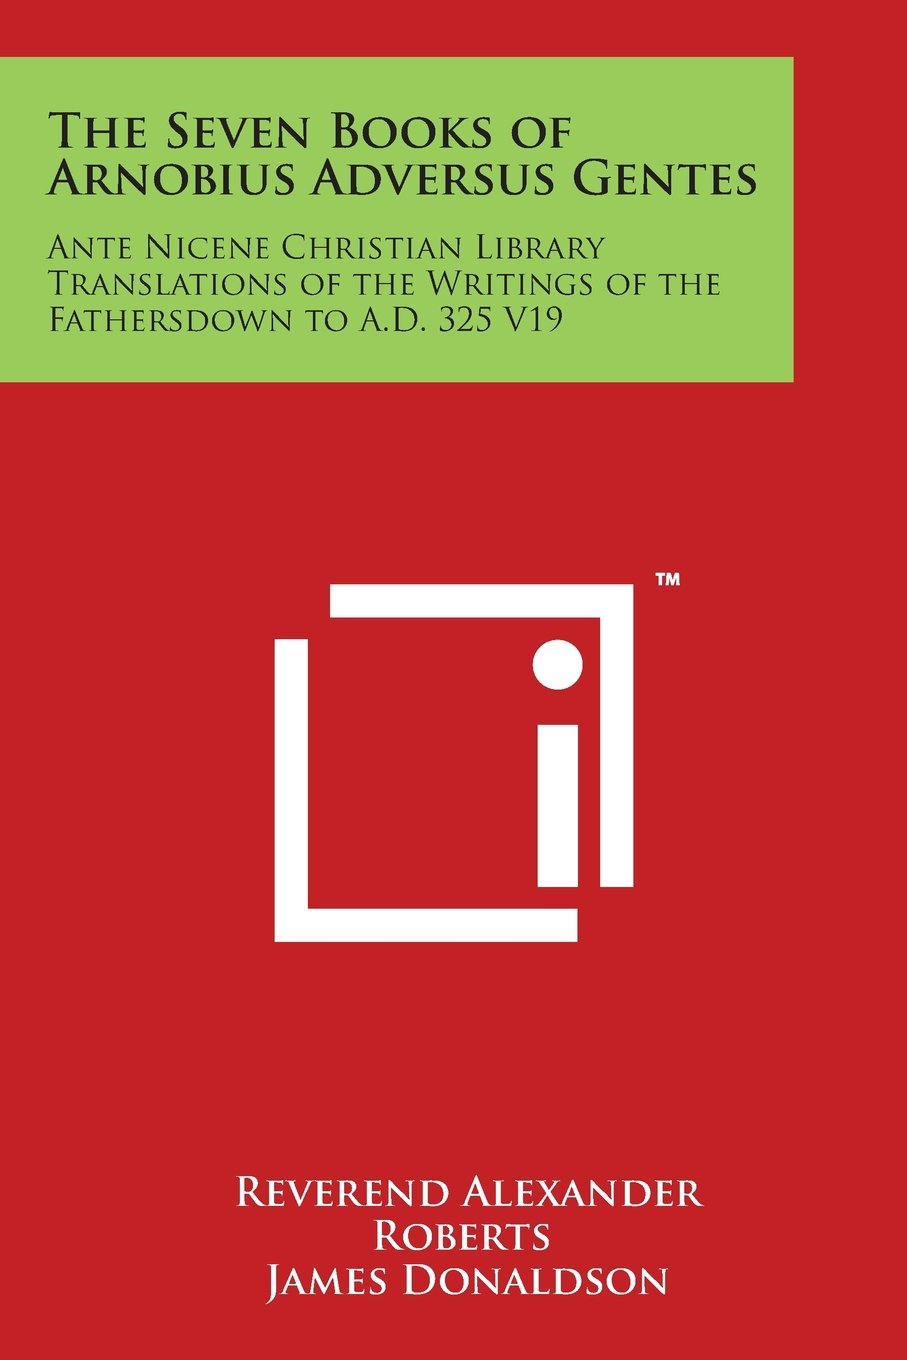 Download The Seven Books of Arnobius Adversus Gentes: Ante Nicene Christian Library Translations of the Writings of the Fathersdown to A.D. 325 V19 pdf epub